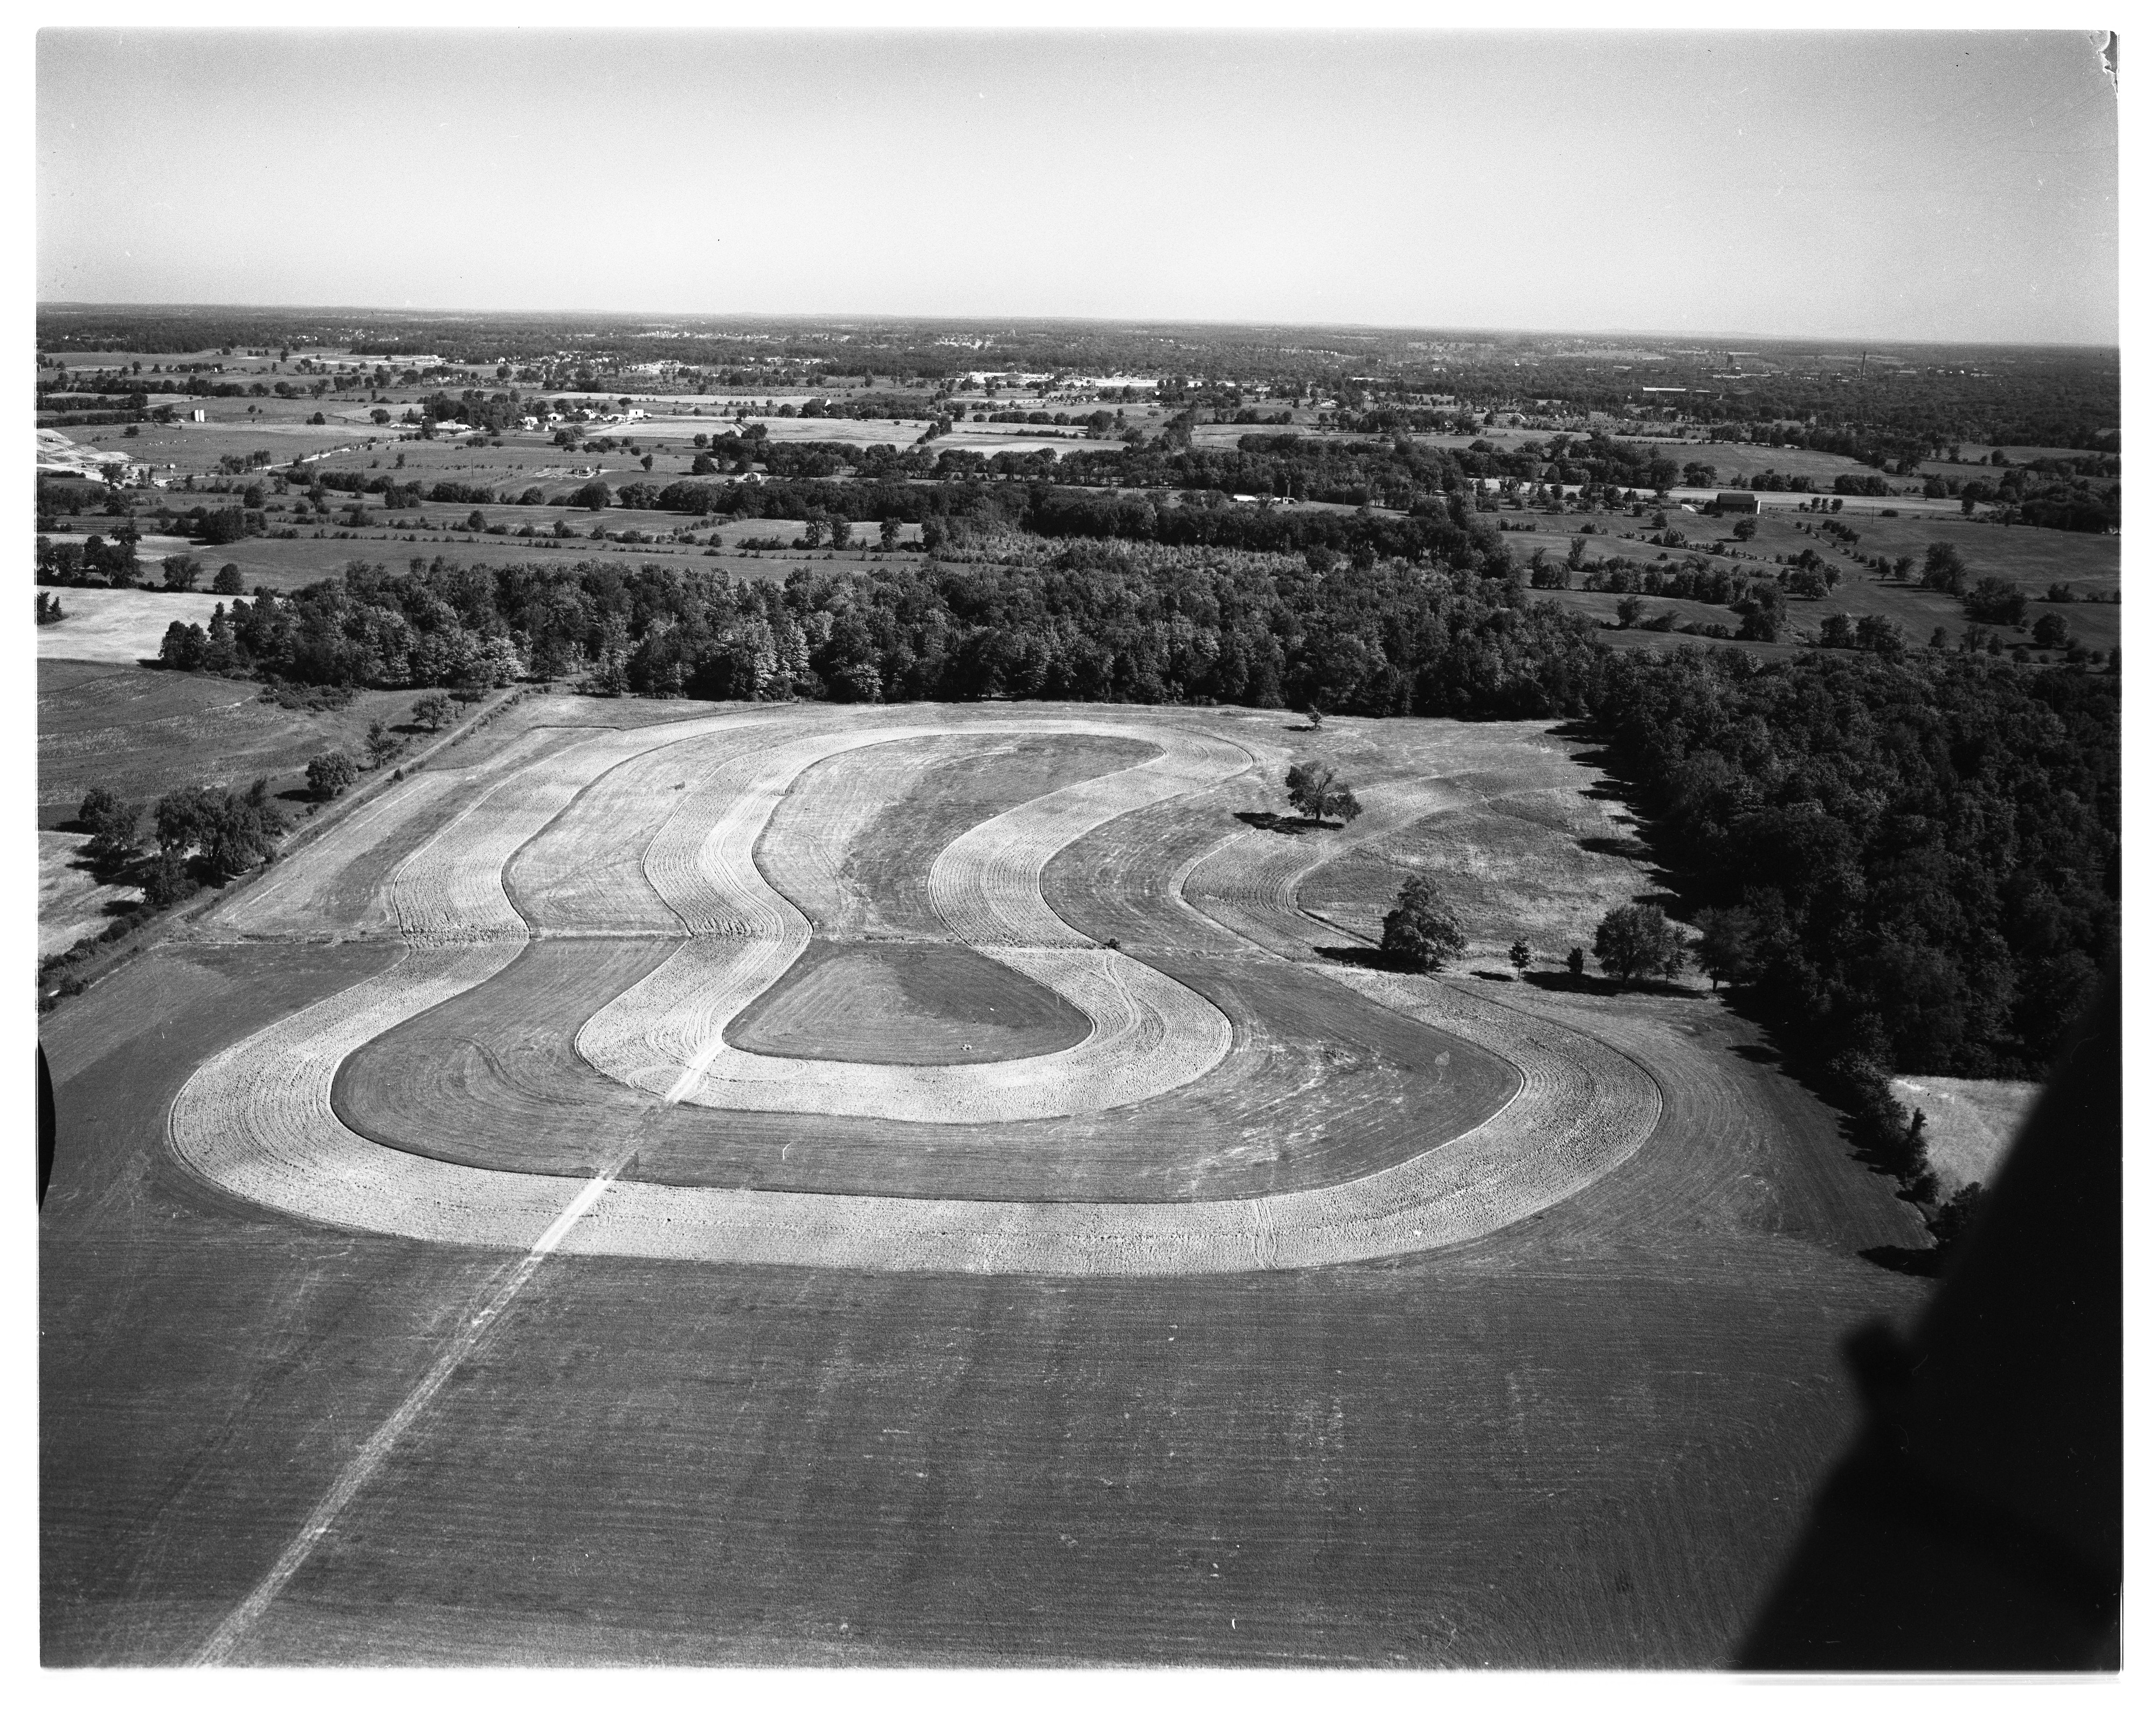 Aerial Photograph of Contour Plowing on a Farmer's Field, 1110 W. Ellsworth Rd., July 1954 image